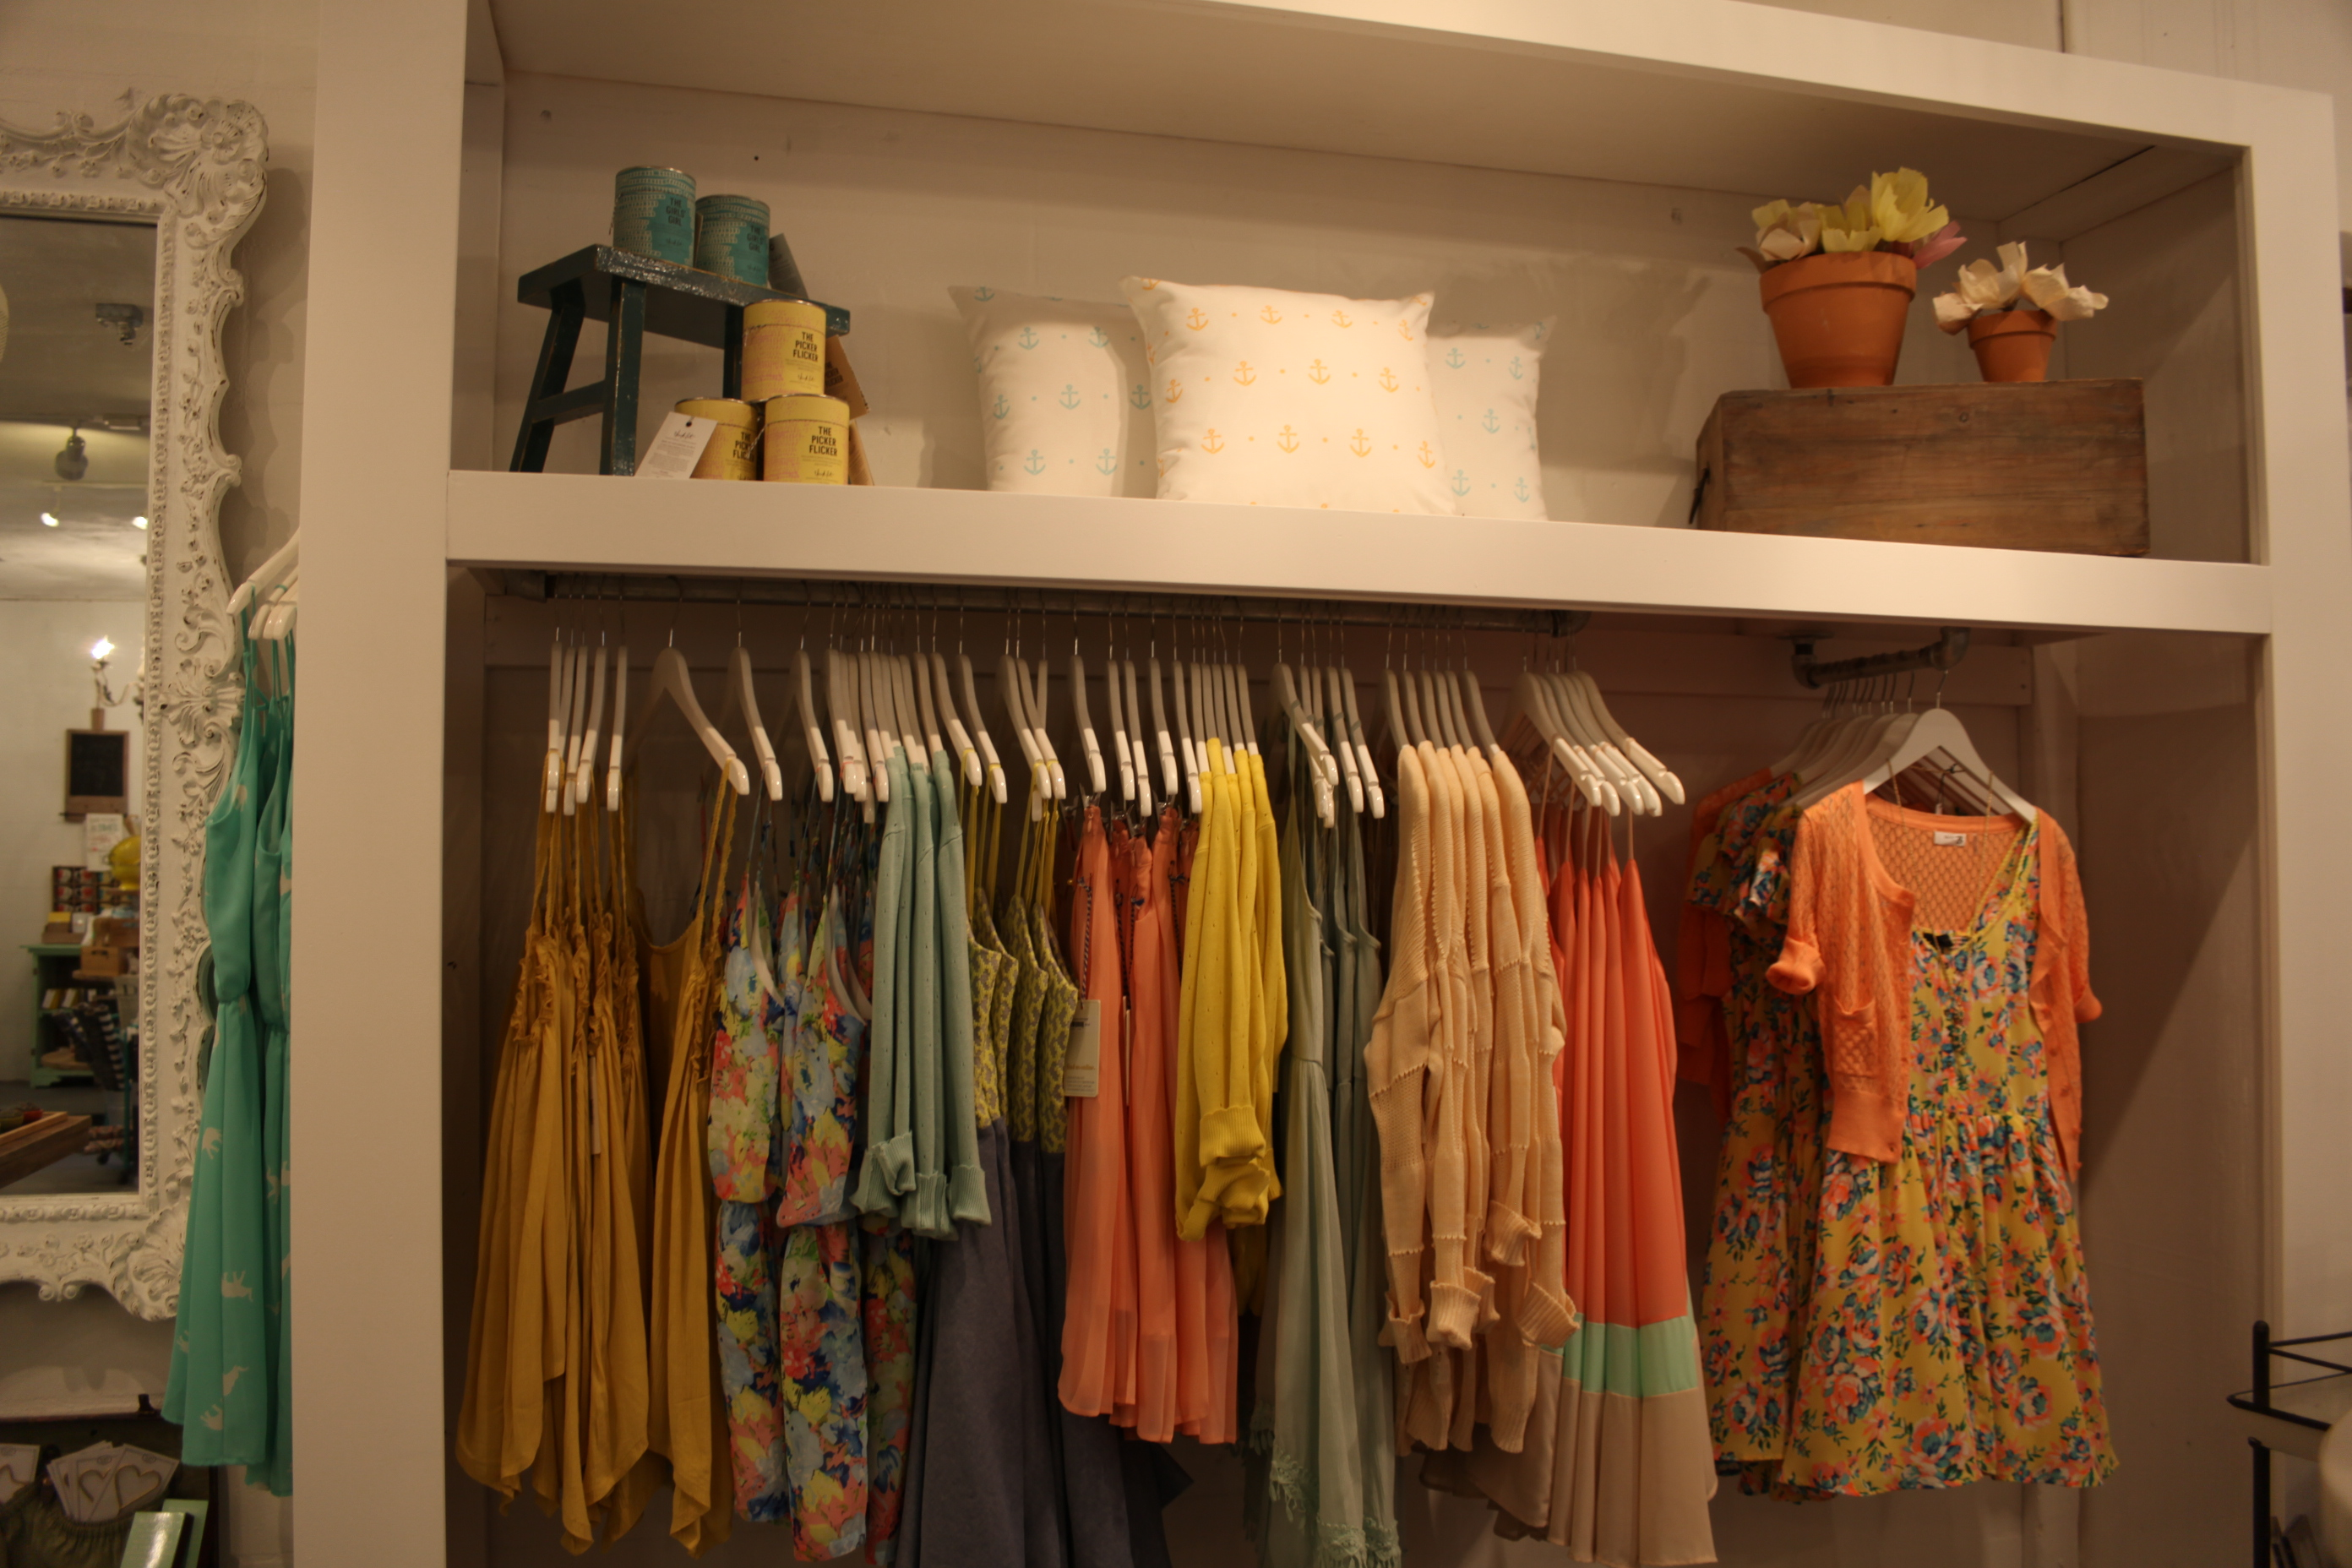 Spring fashions are available at Declaration & Co. The Market Place, 62 San Marco Ave., in uptown St. Augustine.